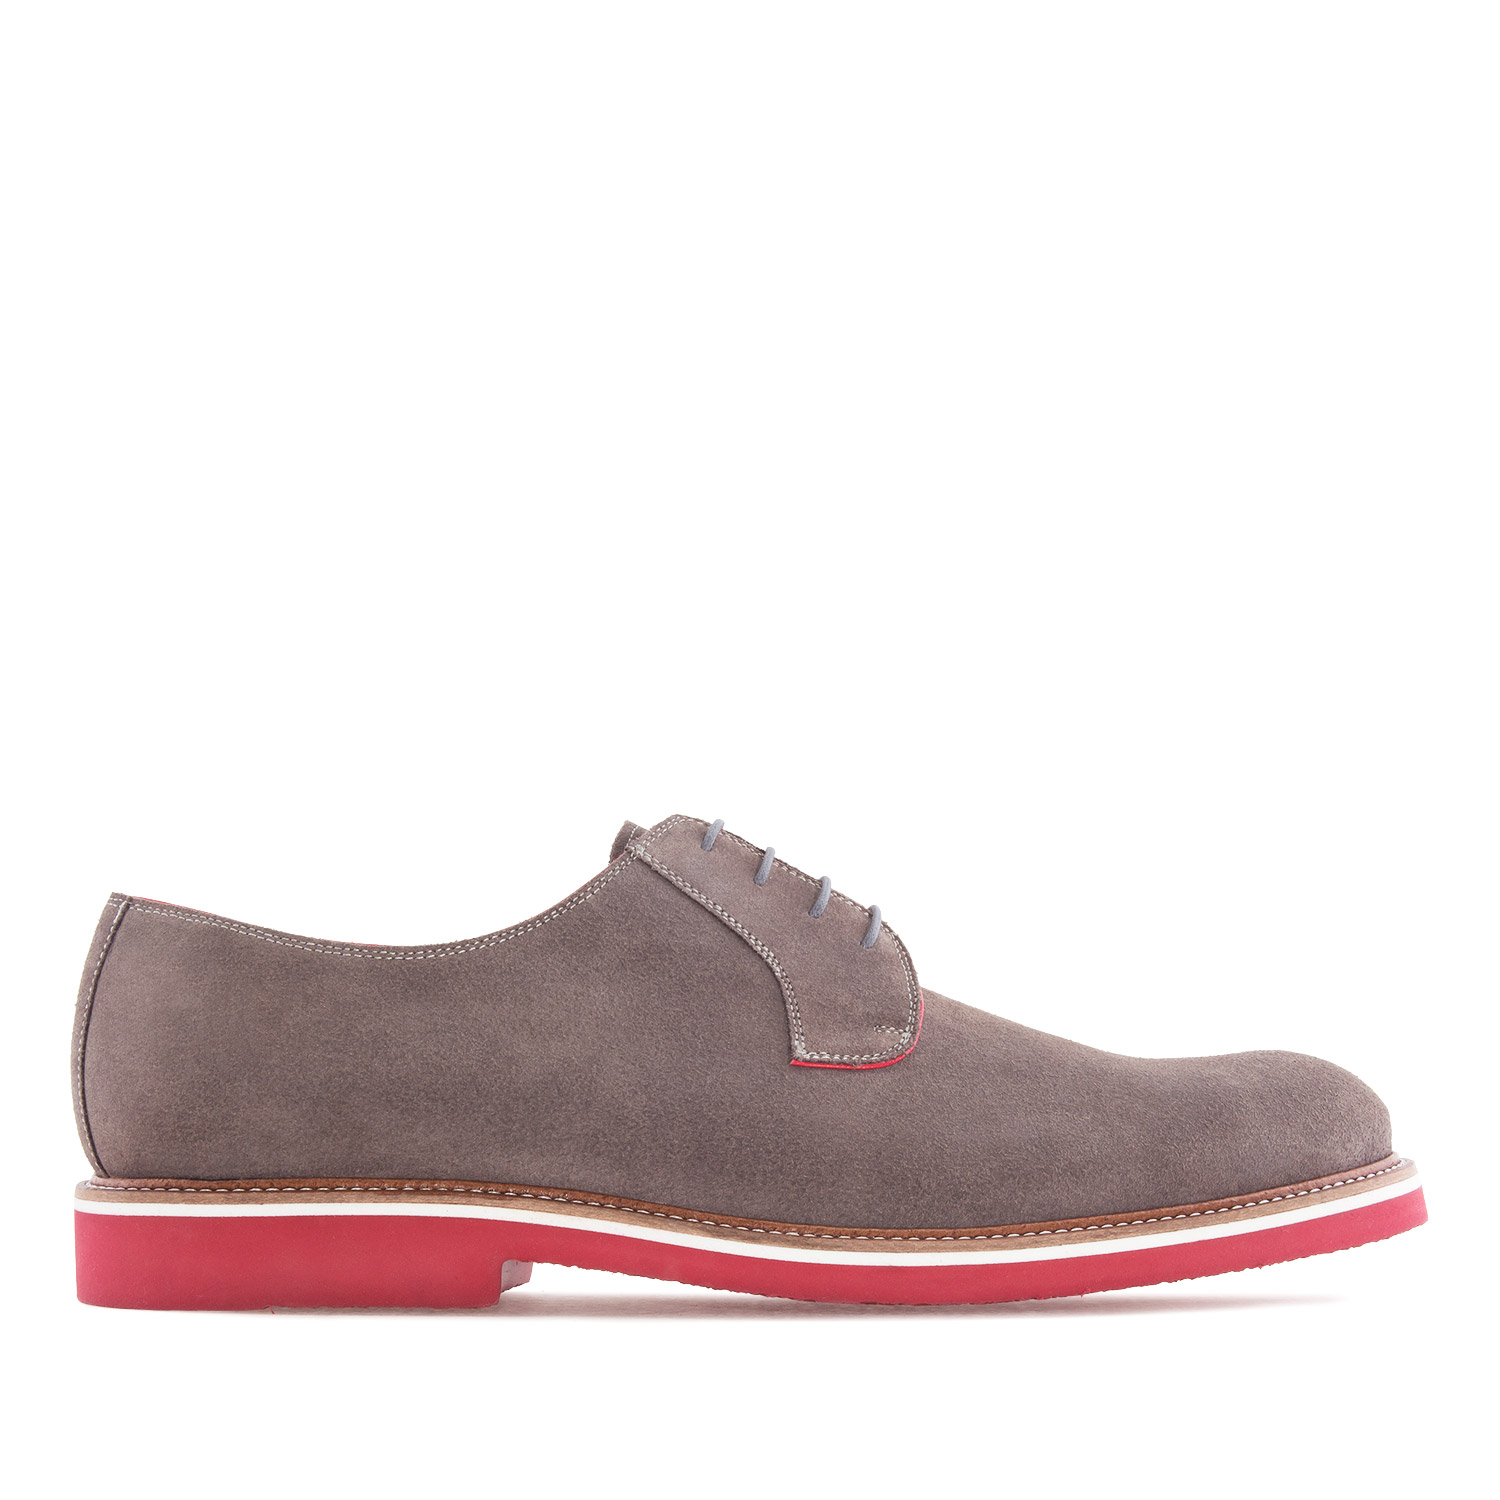 Zapatos oxford serraje gris